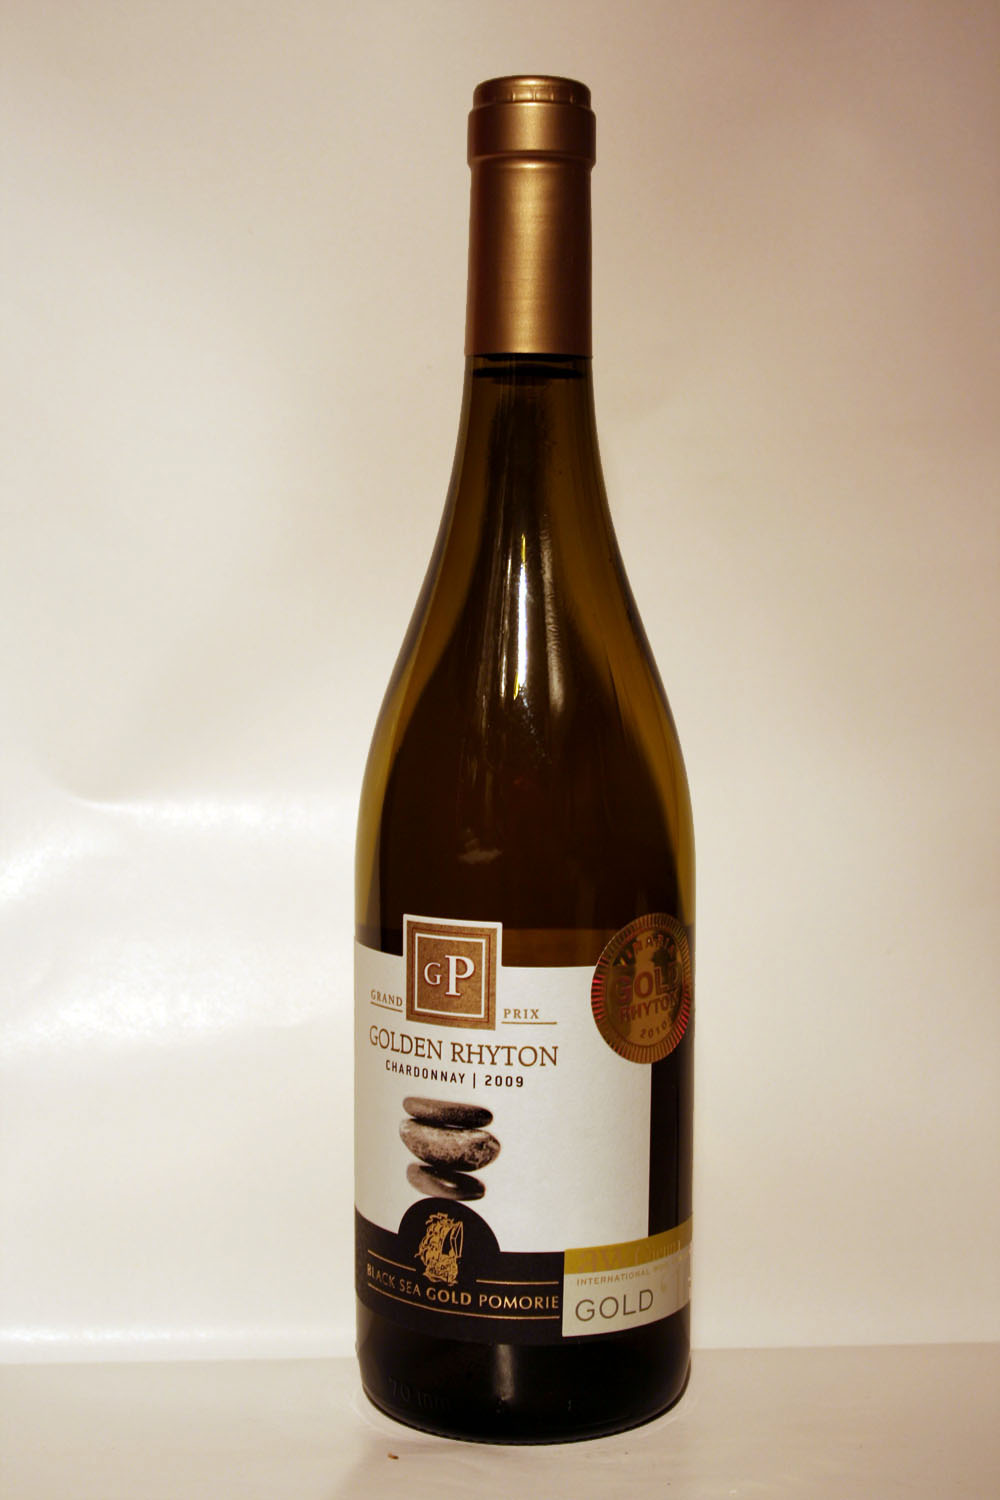 GP Golden Rhyton Chardonnay 2009